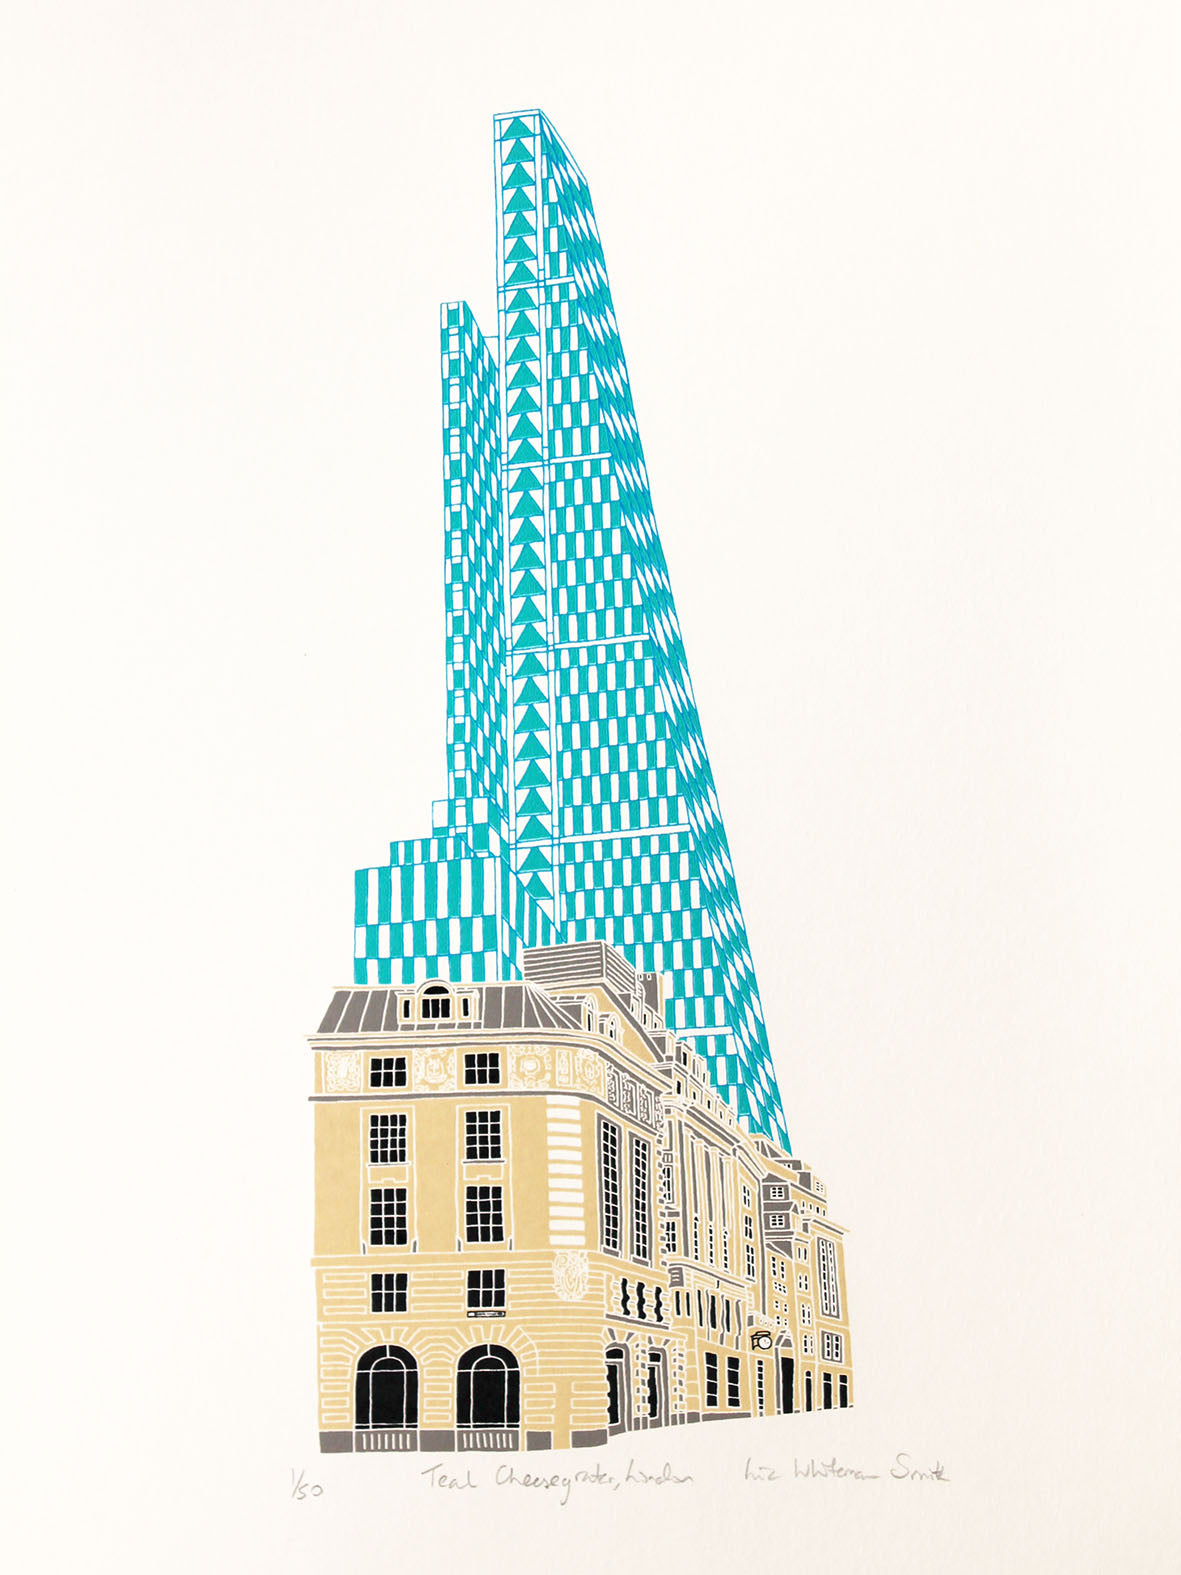 Teal Cheesegrater building in London